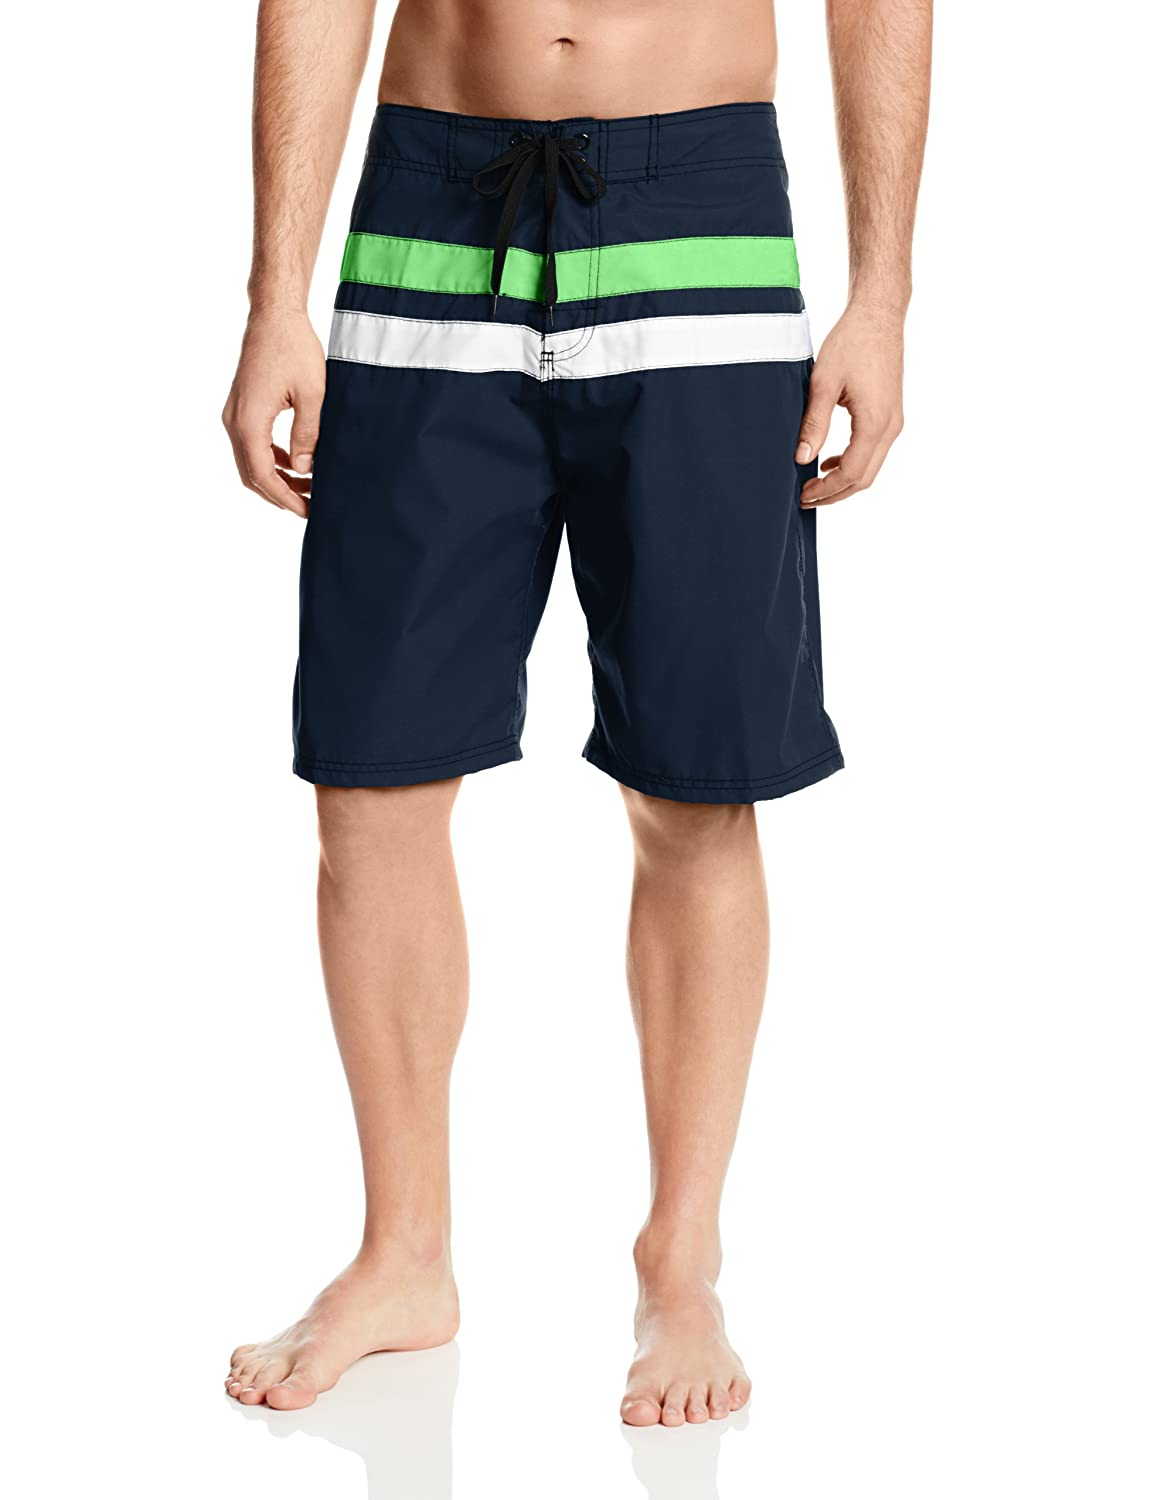 Kanu Surf Men's Rebound Boardshort Kanu Surf Men's Swimwear 1455